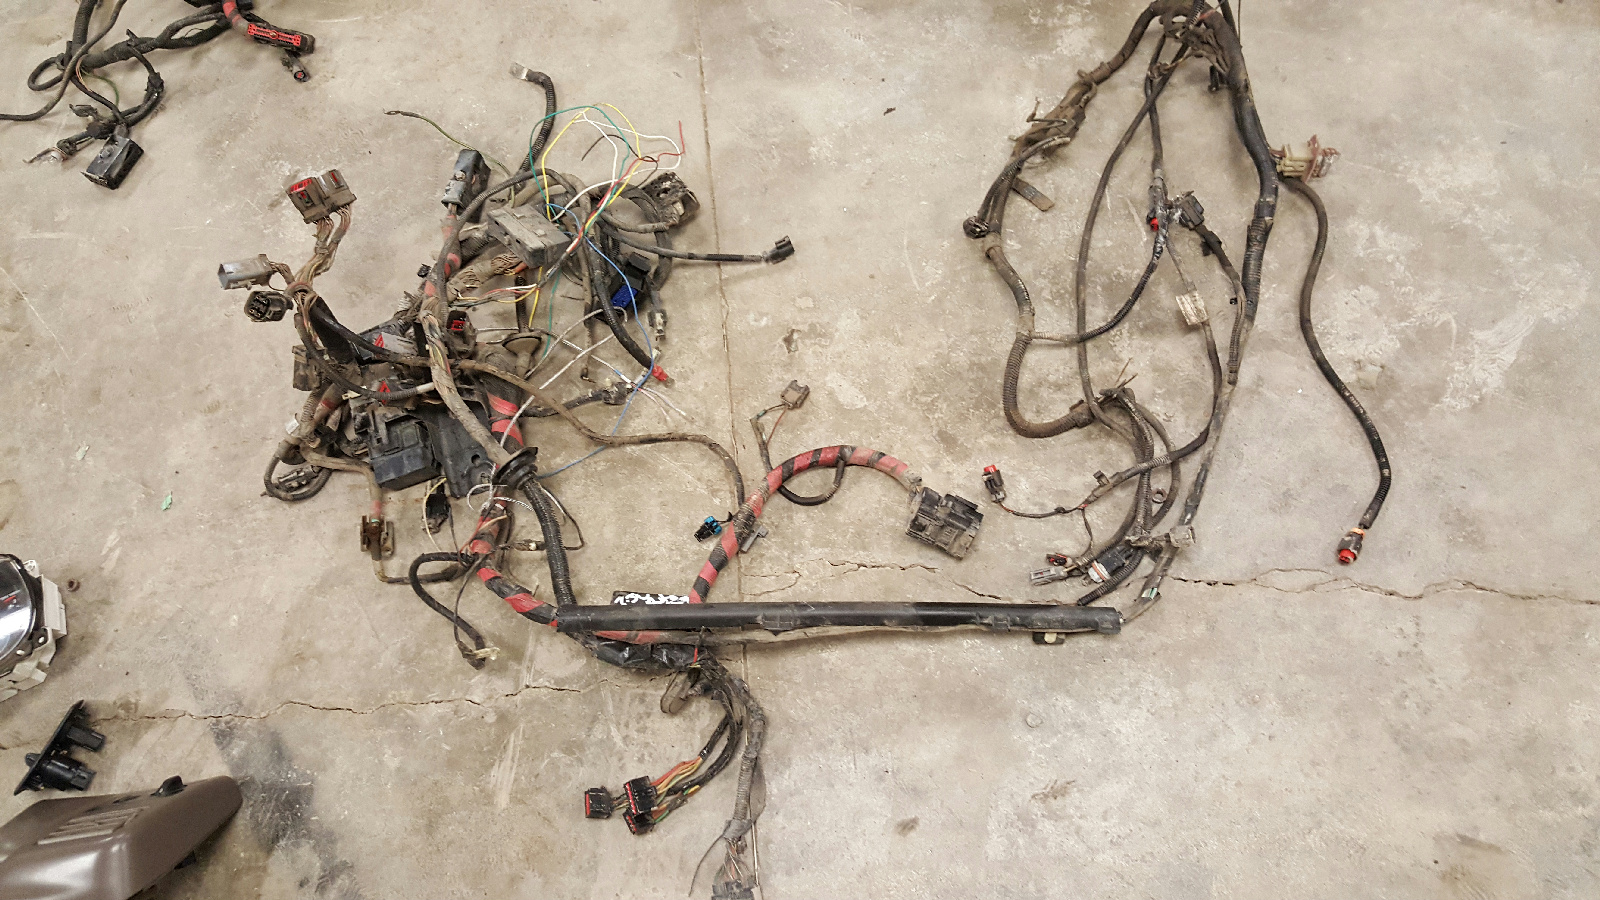 29508345  Ford Engine Wiring Harness on ford 7.3 battery harness, ford 7.3 engine cover, ford 7.3 engine fuel pressure regulator, 7.3 powerstroke engine wiring harness, ford 7.3 injector harness,